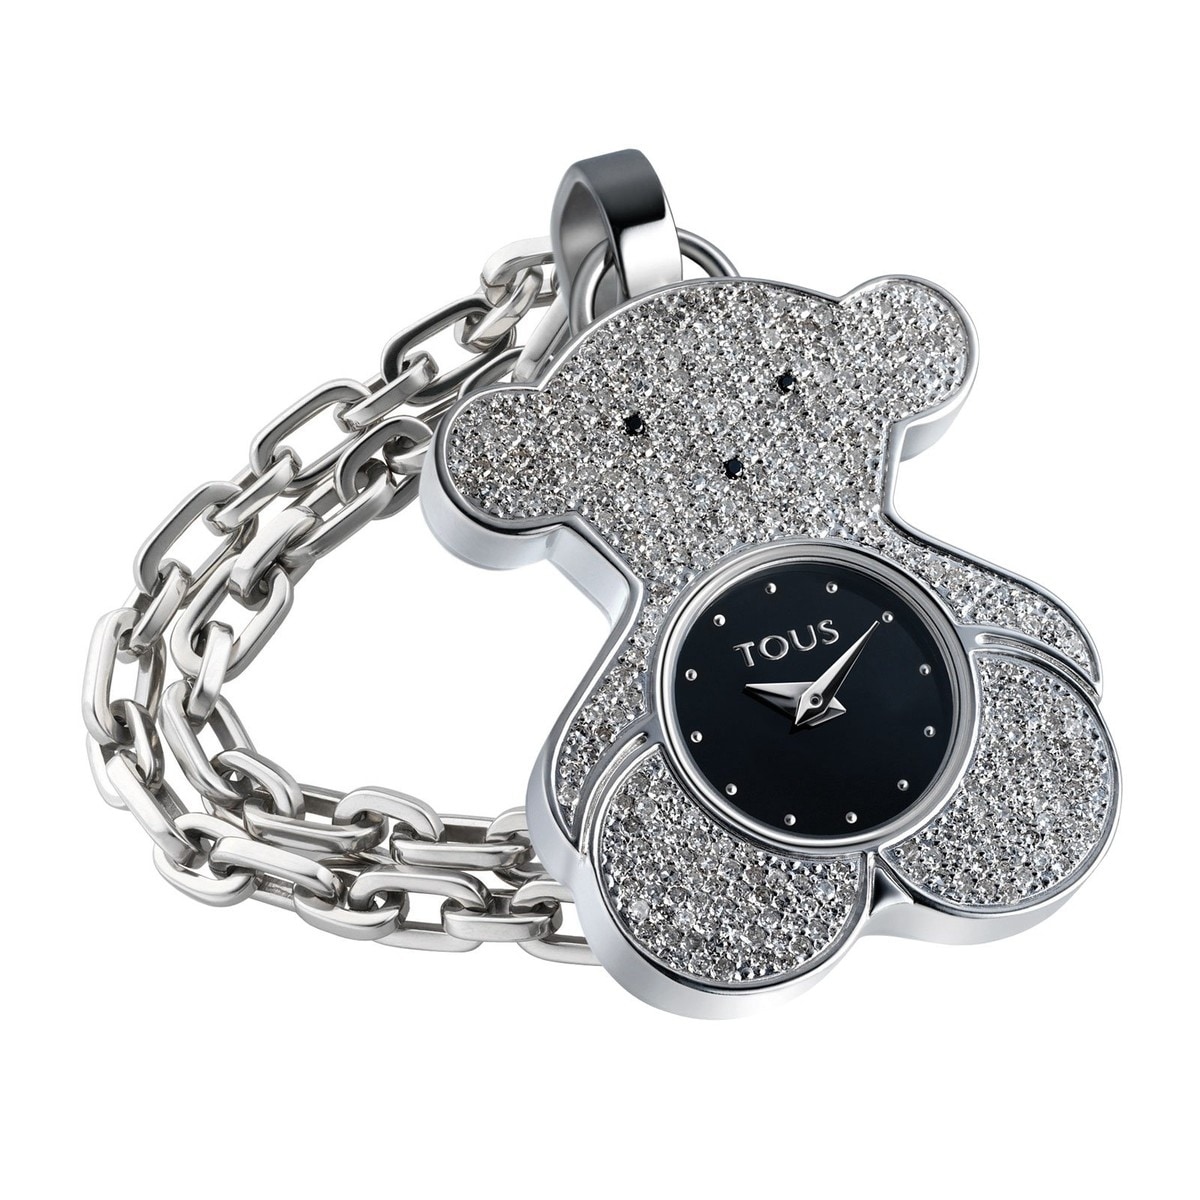 Steel Tousy Watch with Diamonds